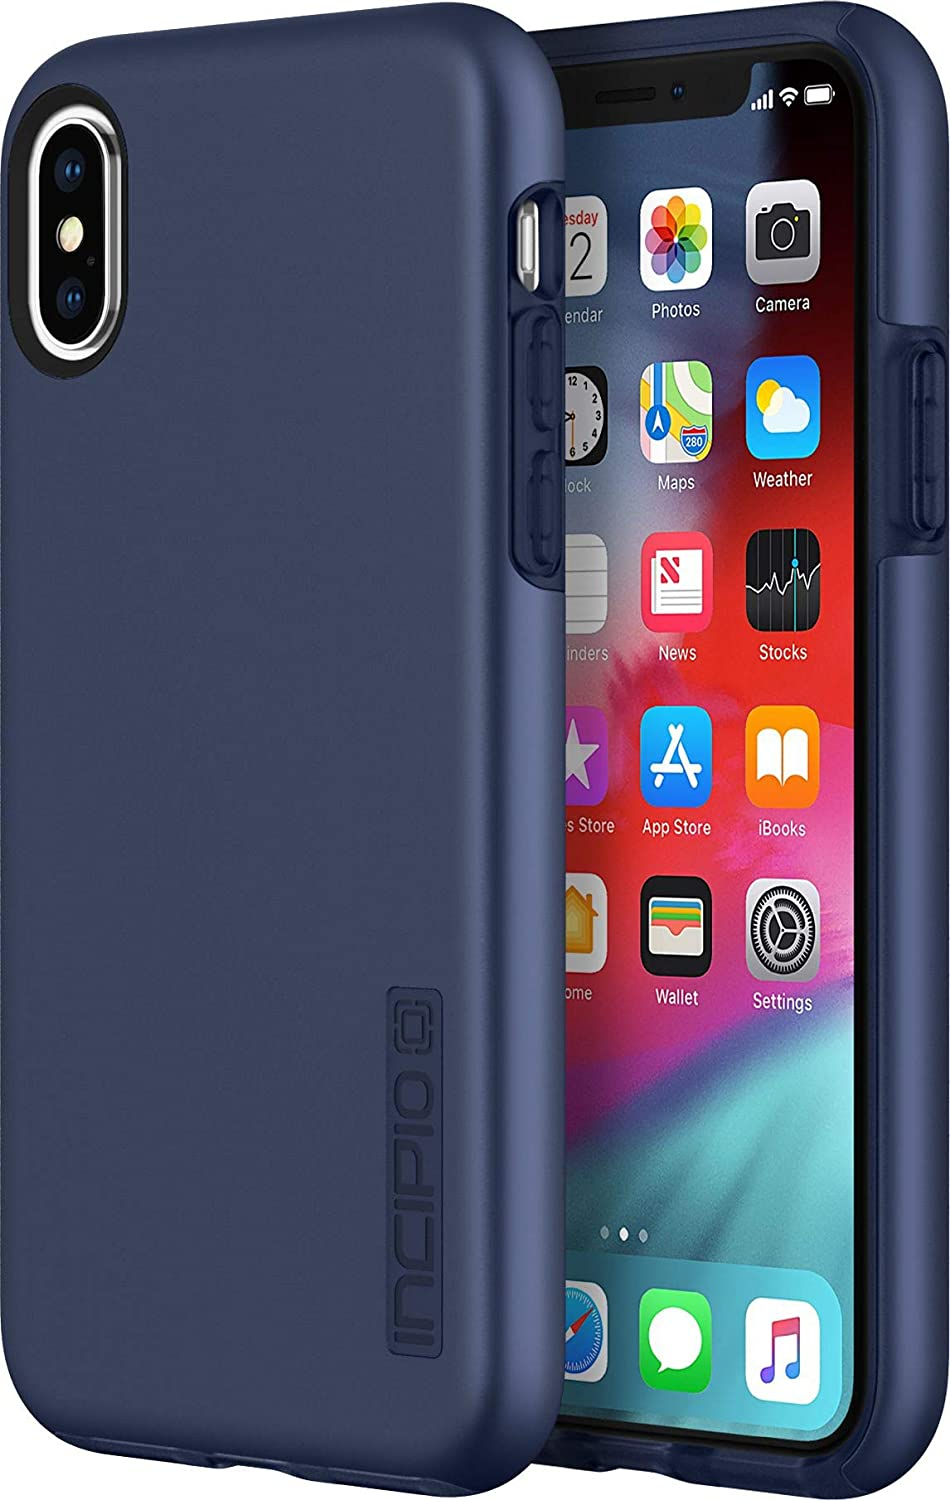 "Incipio DualPro Case for iPhone Xs (5.8"") & iPhone X Case with Hybrid Shock Absorbing Drop Protection - Midnight Blue"